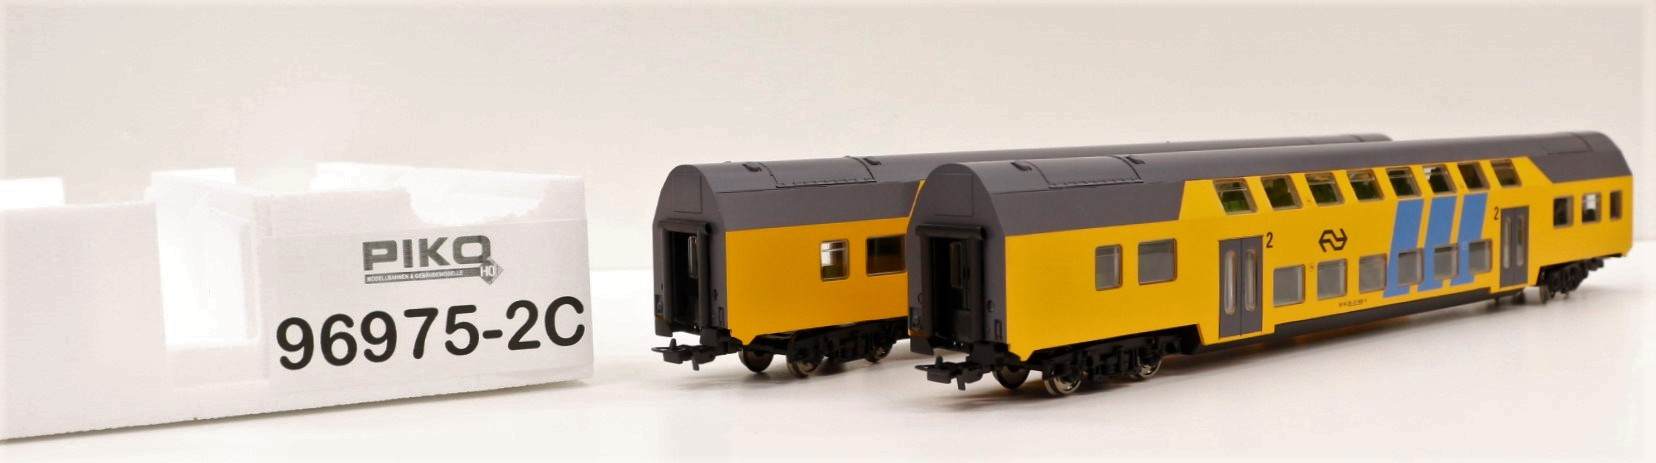 96975-2C Piko HO Set 2 carrozze bipiano delle NS 1 cl. e 1/2 classe da start set